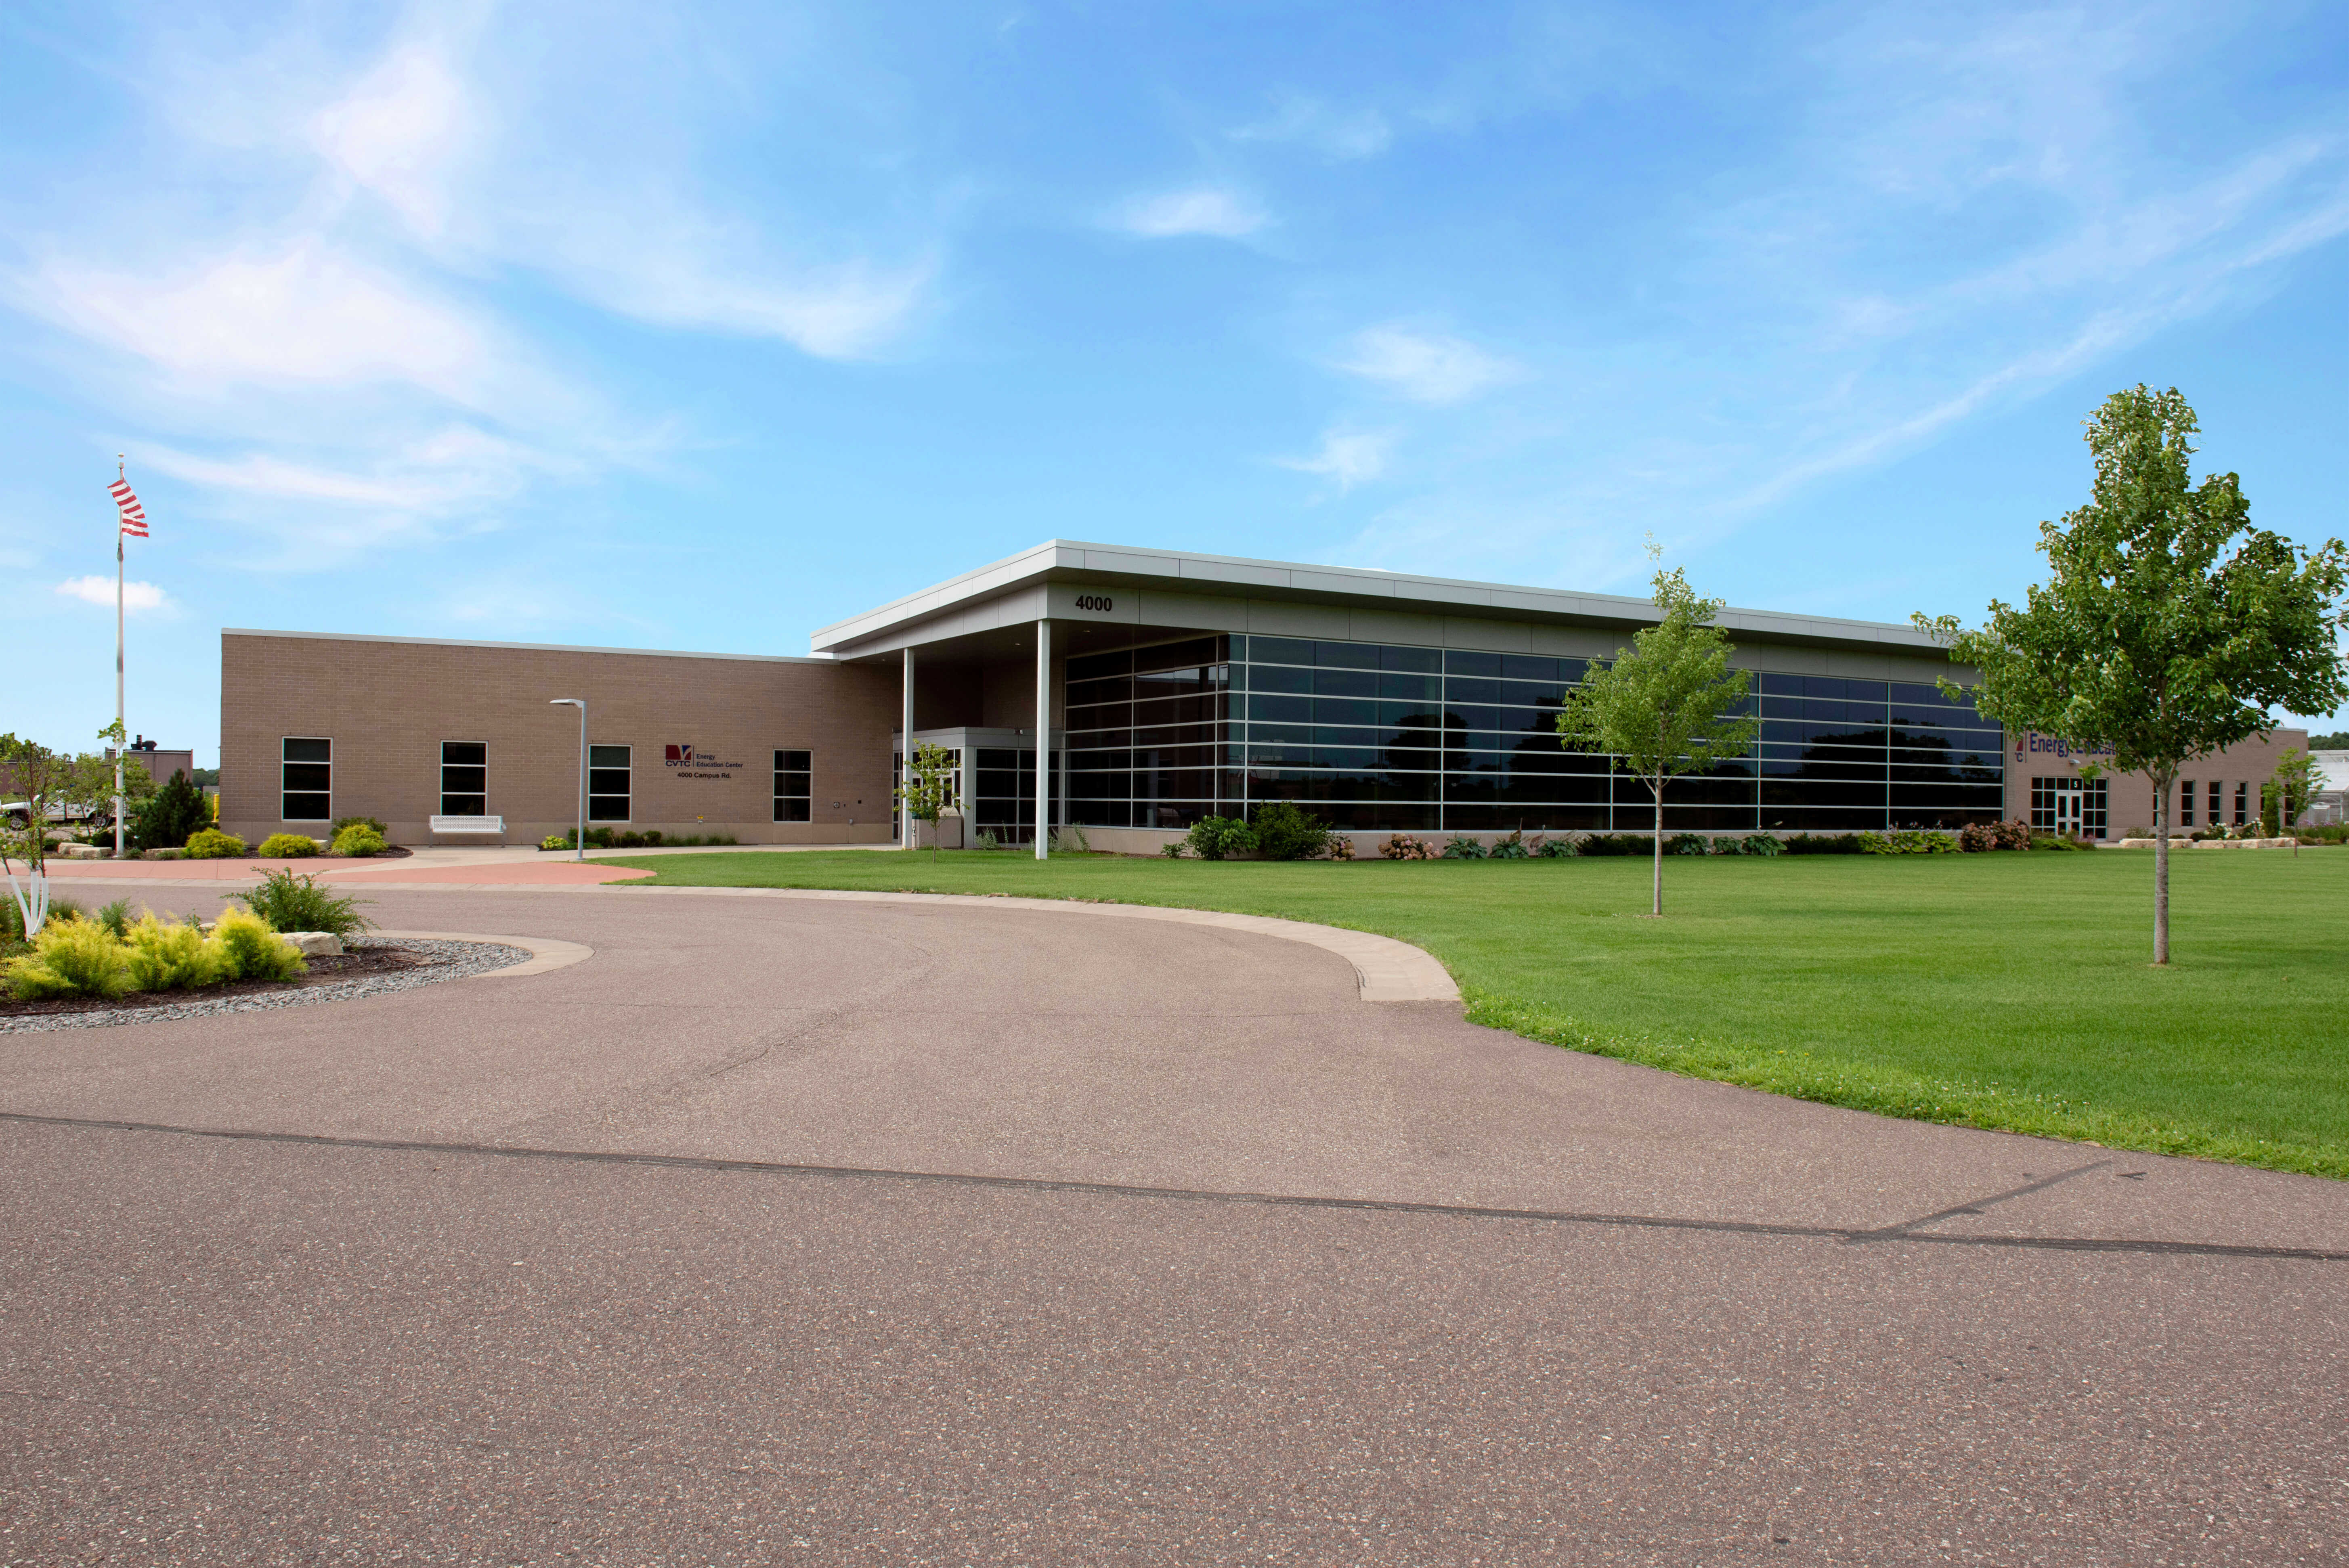 Chippewa Valley Technical College - Energy Education Center